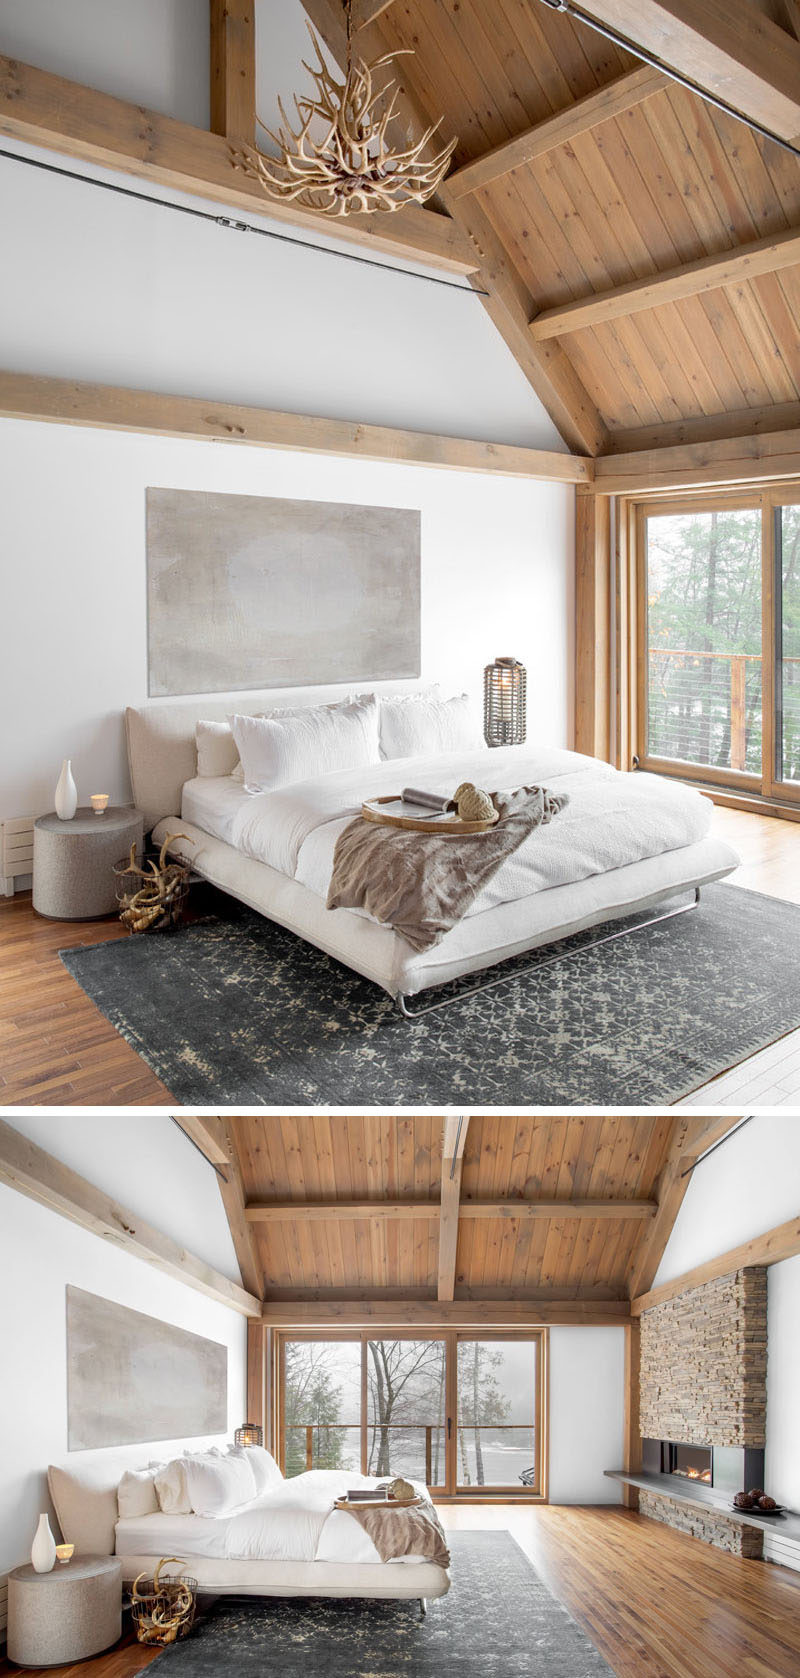 Modern Neutral Master Bathroom 2: This Cozy Barn-Inspired Bedroom